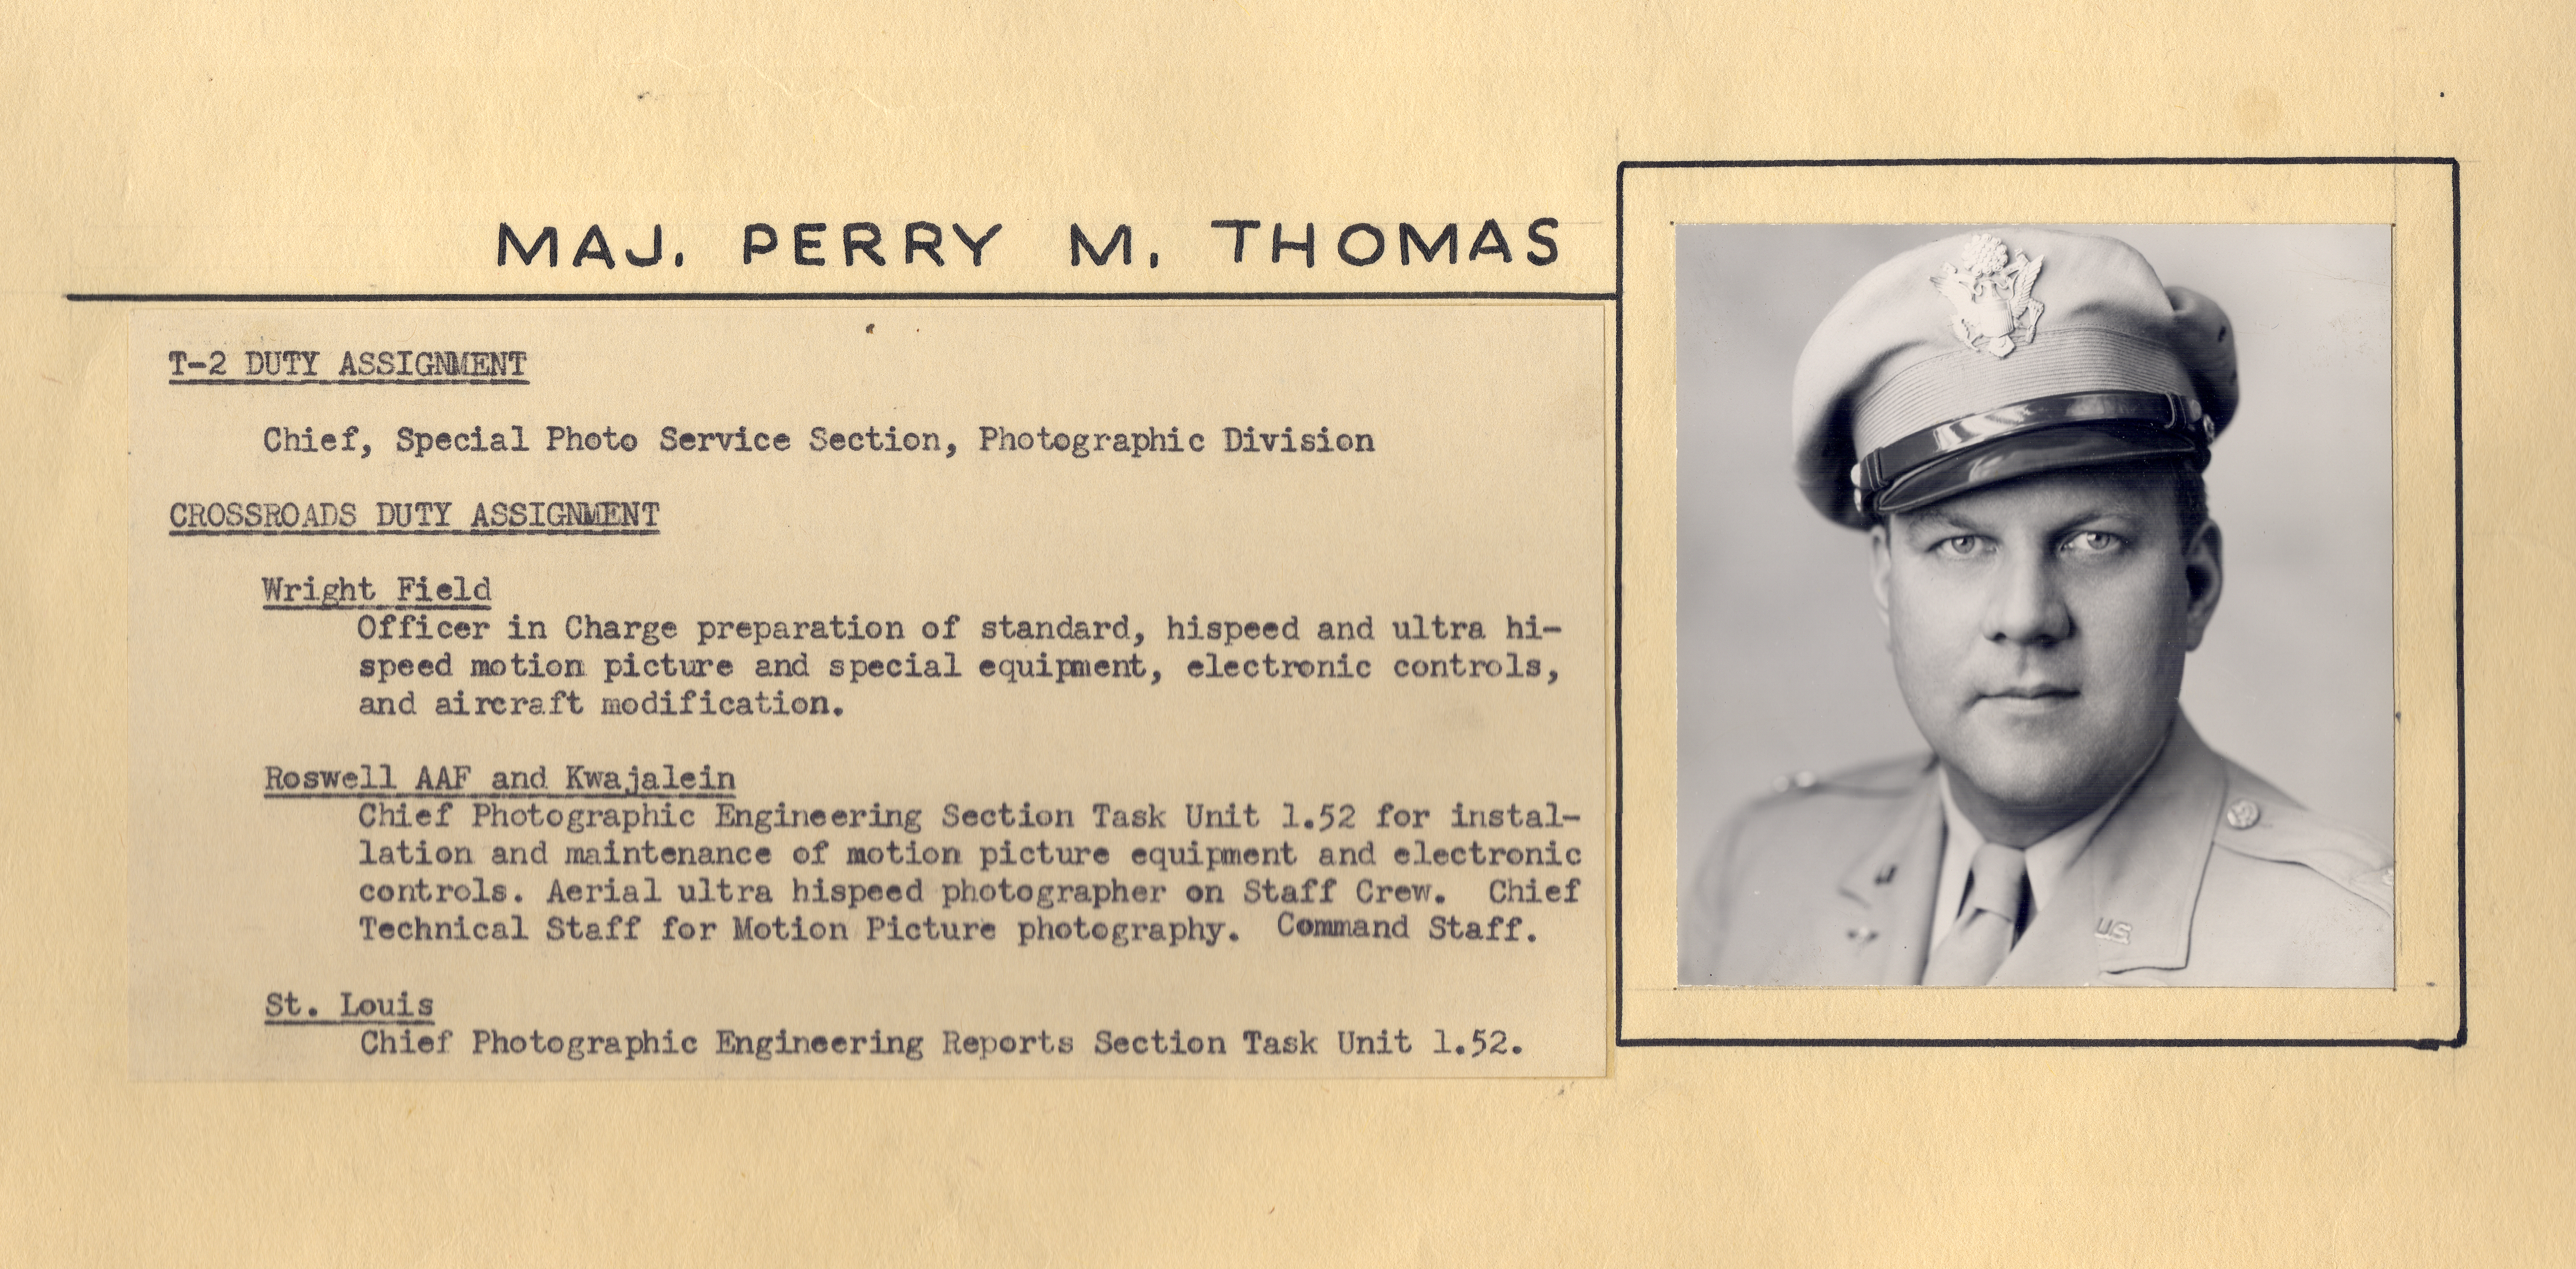 Major Perry M. Thomas, 1945-1946